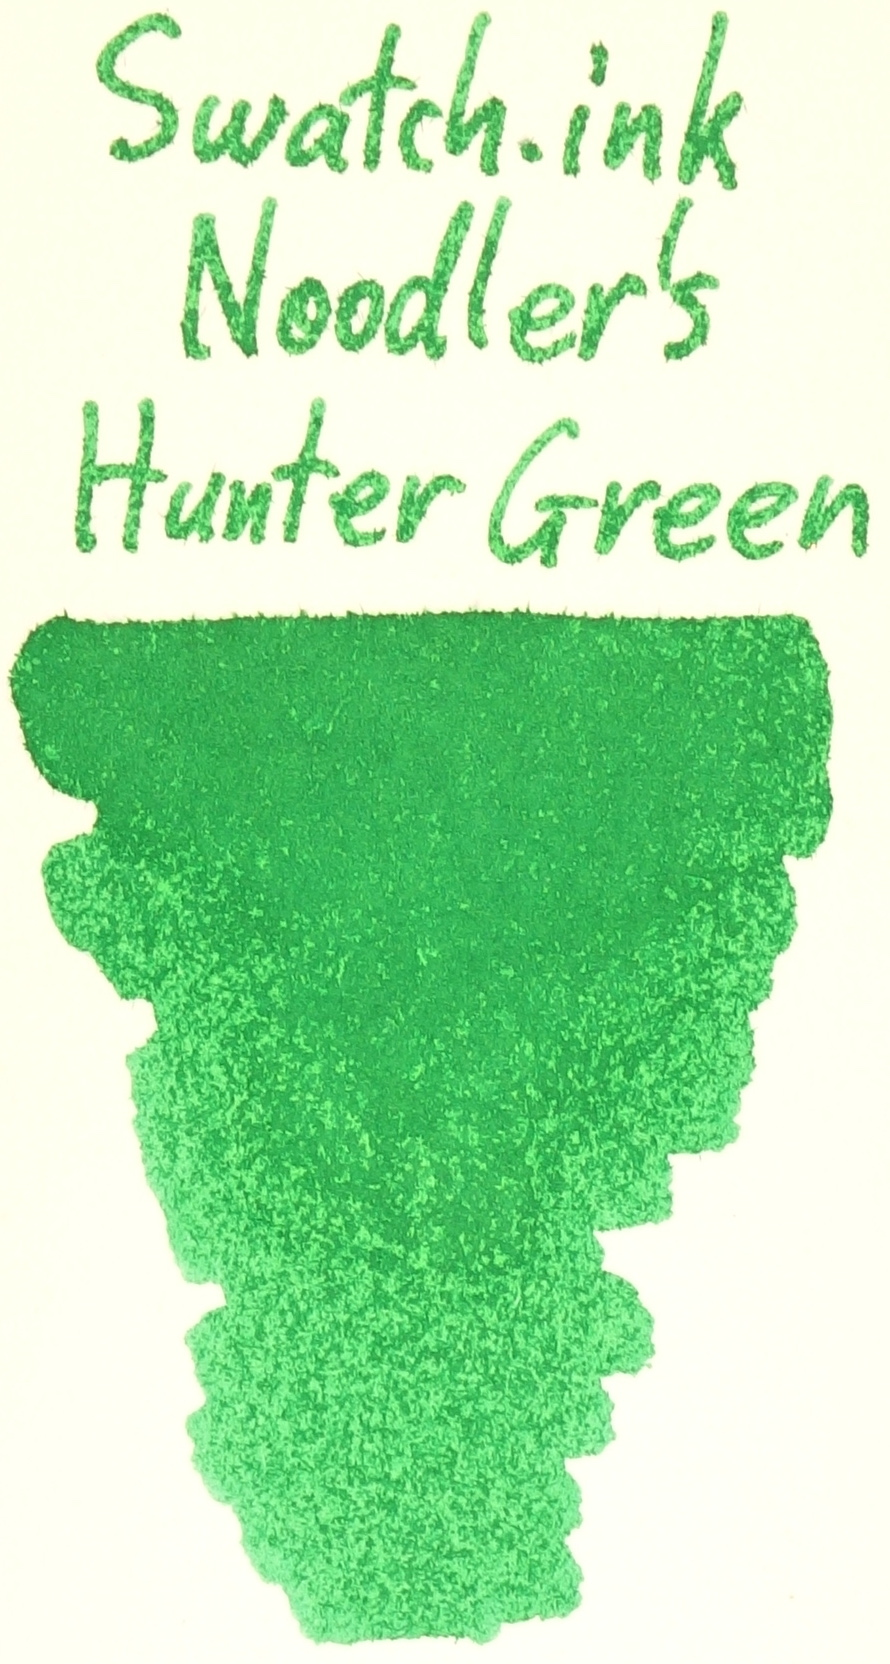 Noodler's Hunter Green Swatch.ink.JPG